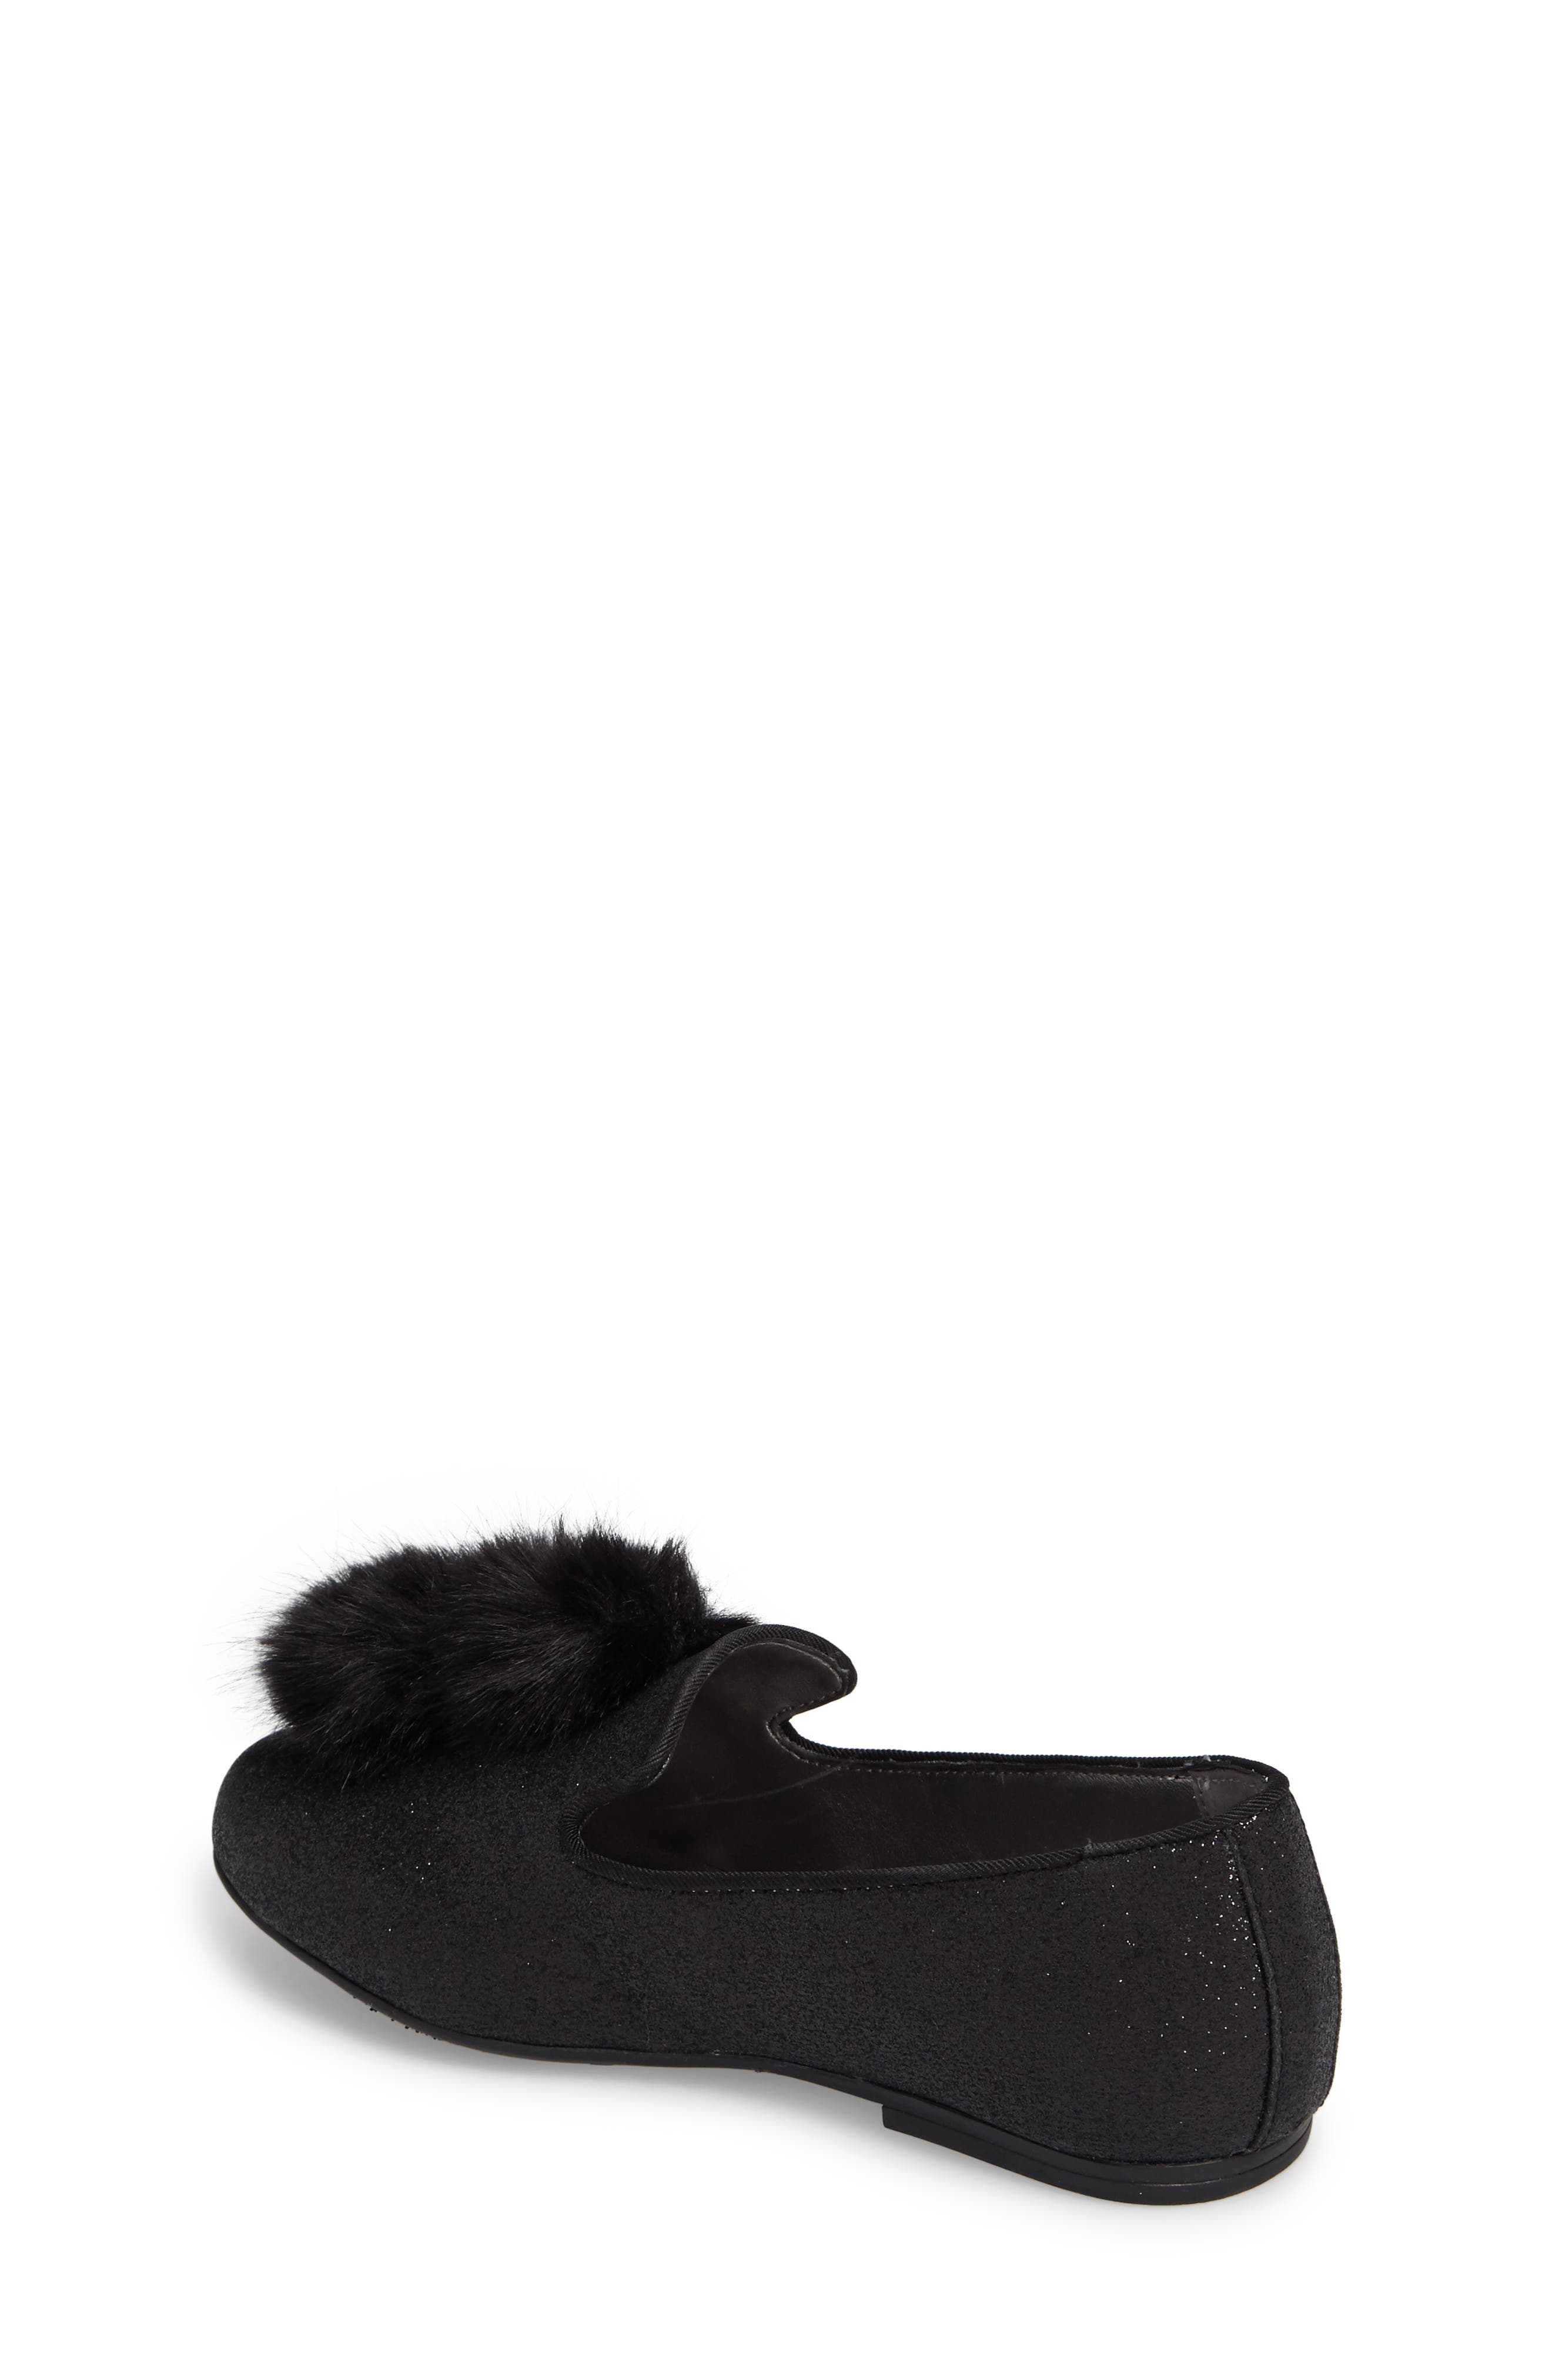 Caela Faux Fur Loafer,                             Alternate thumbnail 2, color,                             Black Glitter